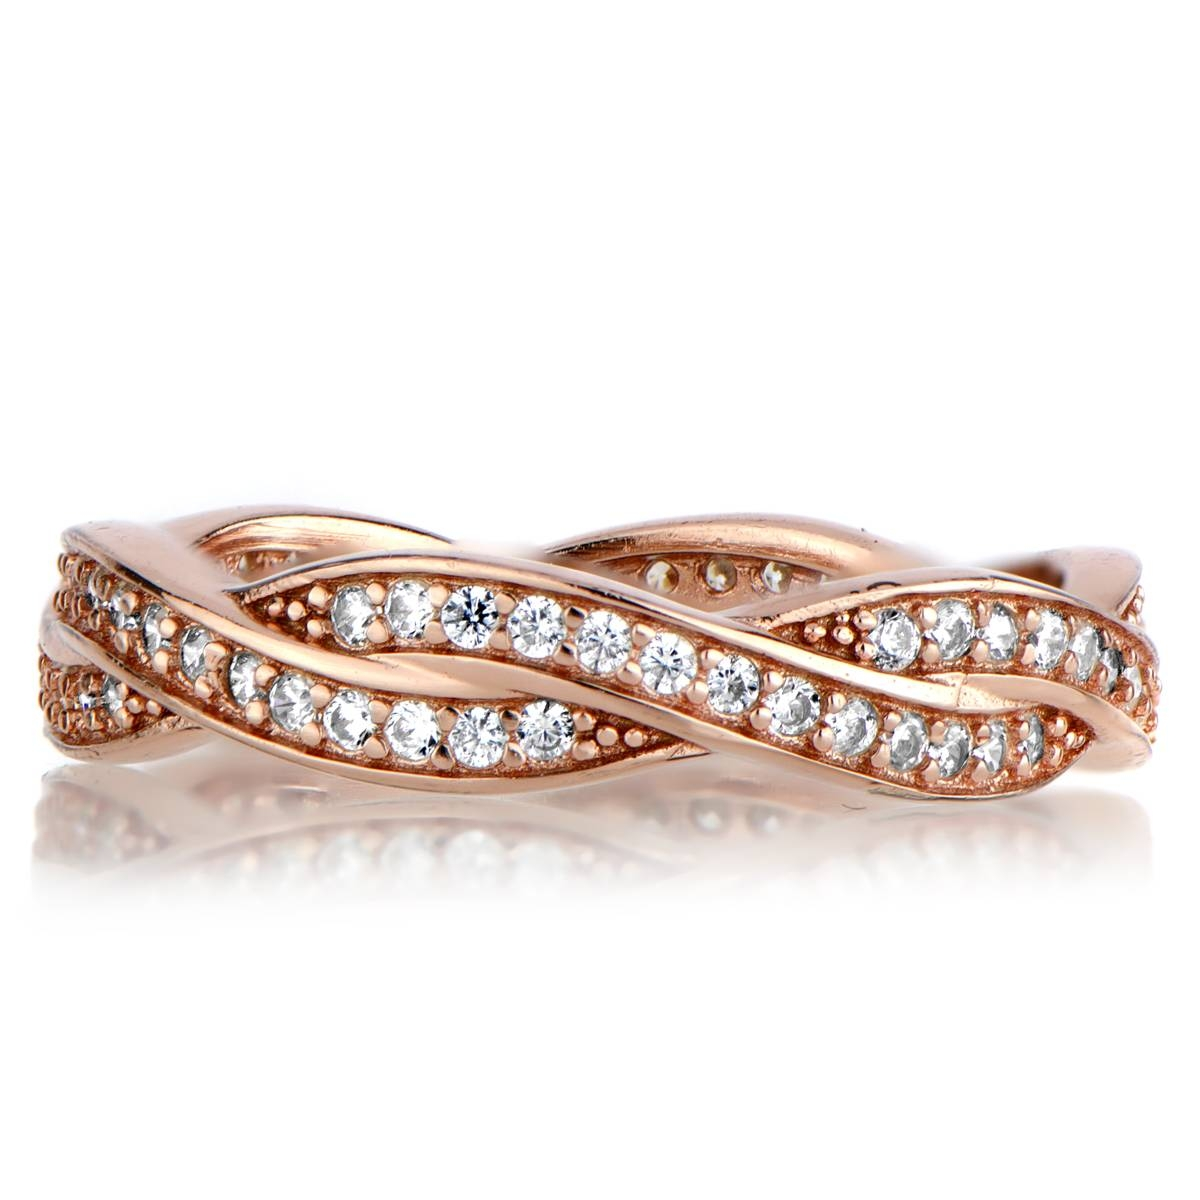 Rose Gold Twisted Cz Wedding Ring Band With Twist Wedding Bands (Gallery 4 of 15)